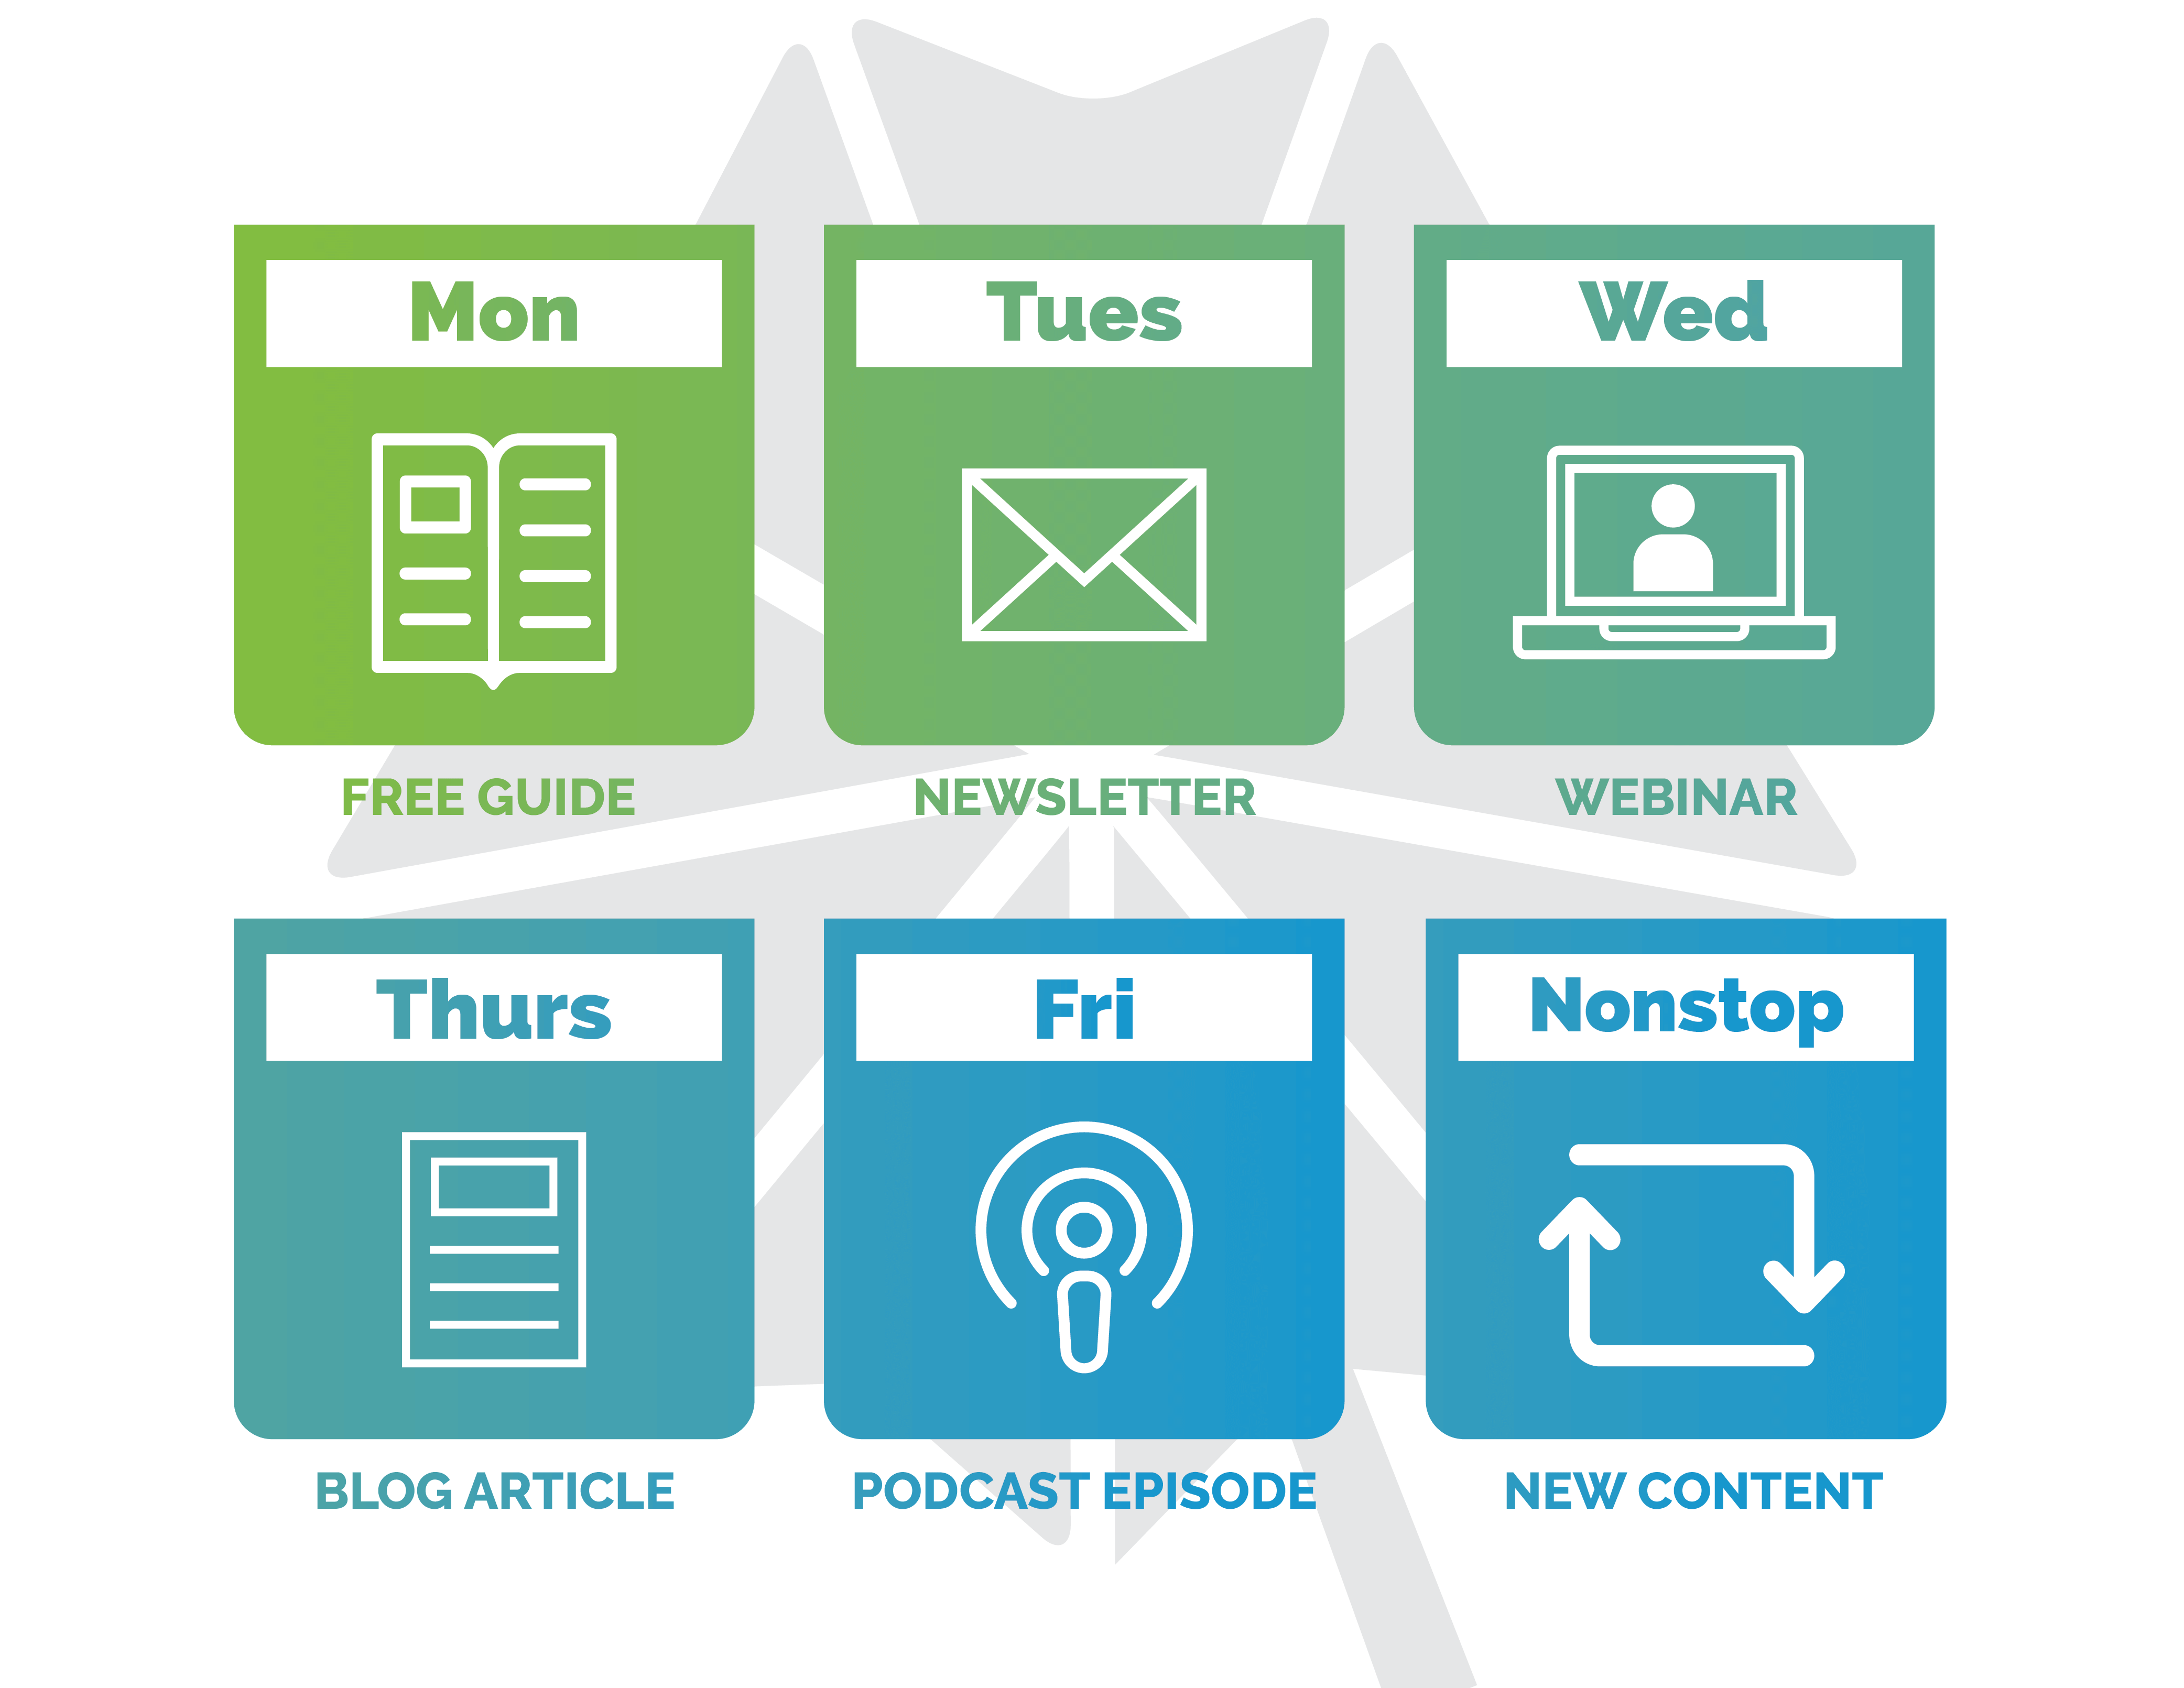 Image of weekly calendar with content cateogires